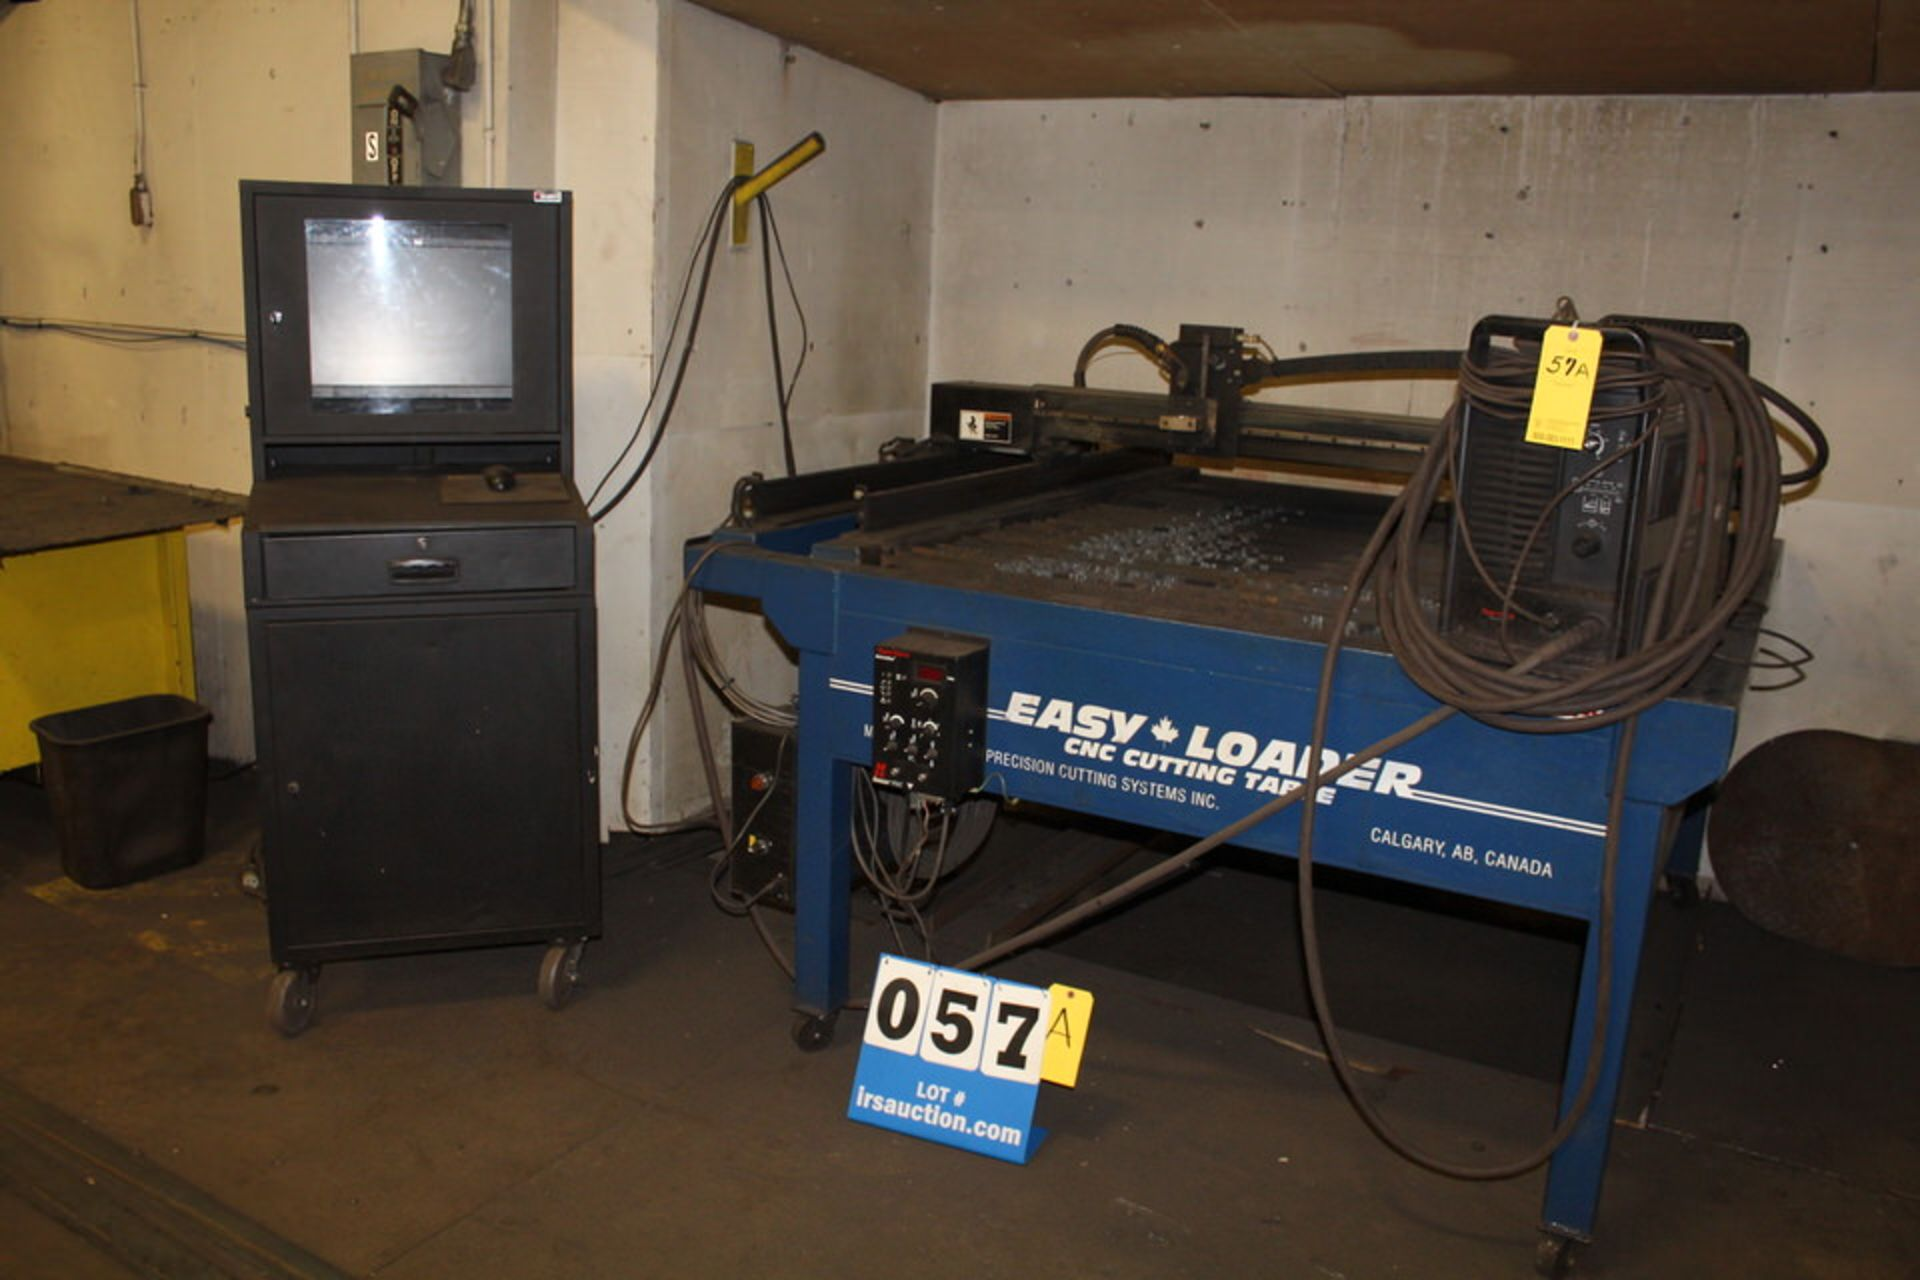 Lot 57A - EASY LOADER EZ 4X4 CNC CUTTING TABLE, W/ HYPERTHERM POWER MAX 1,000 POWER SUPPLY & CONTROL (